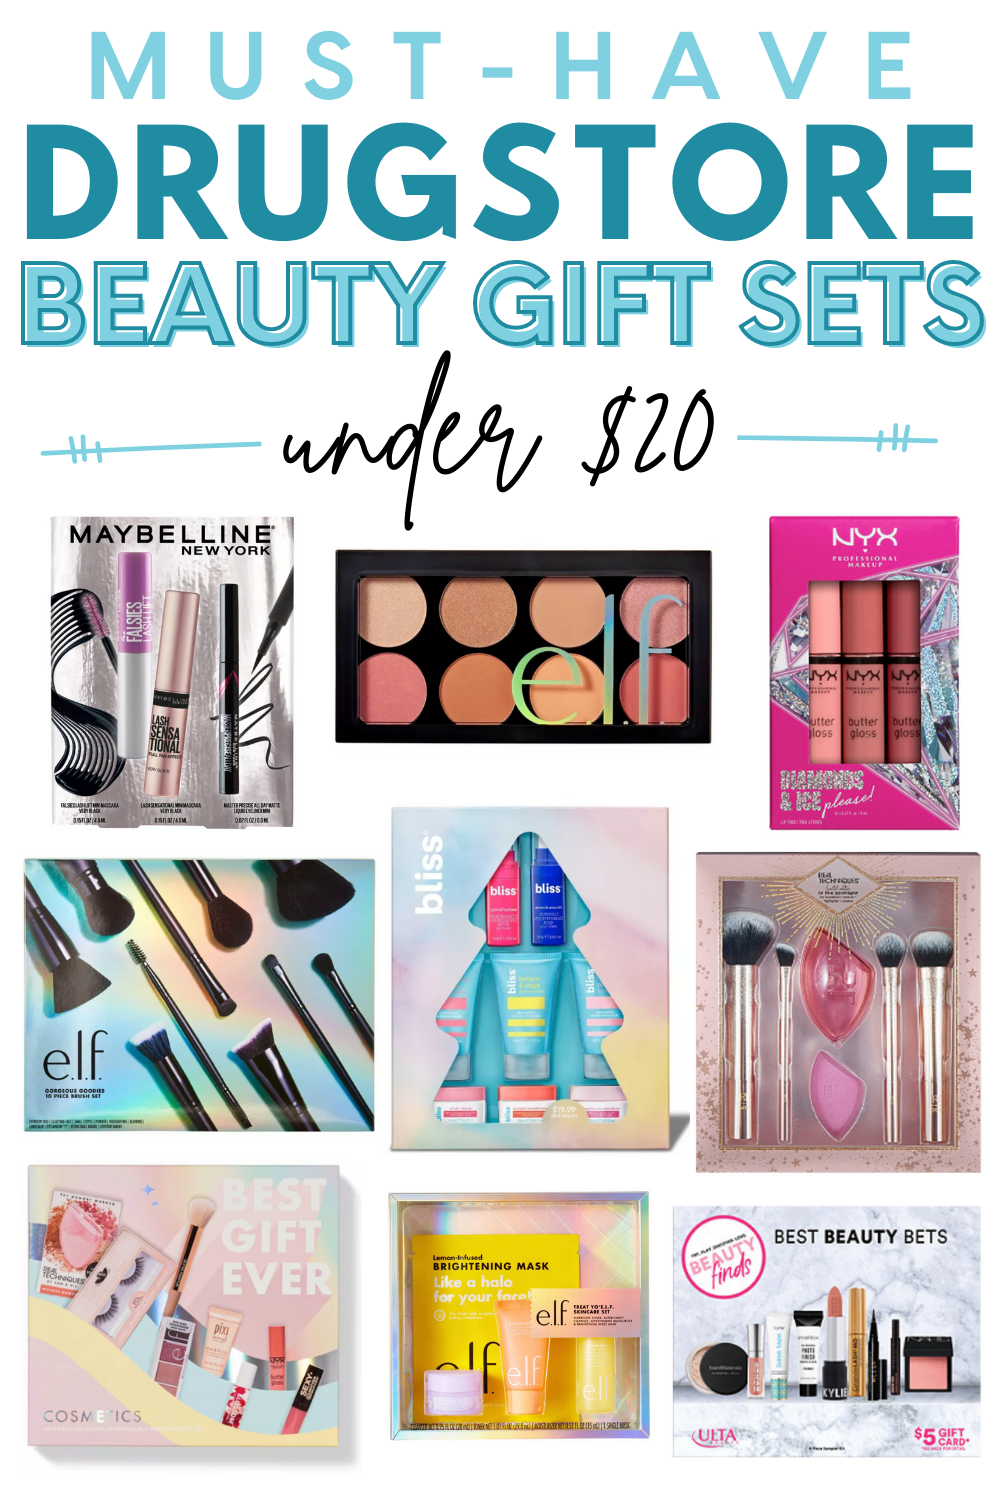 The Best Drugstore Beauty Gift Sets Under $20